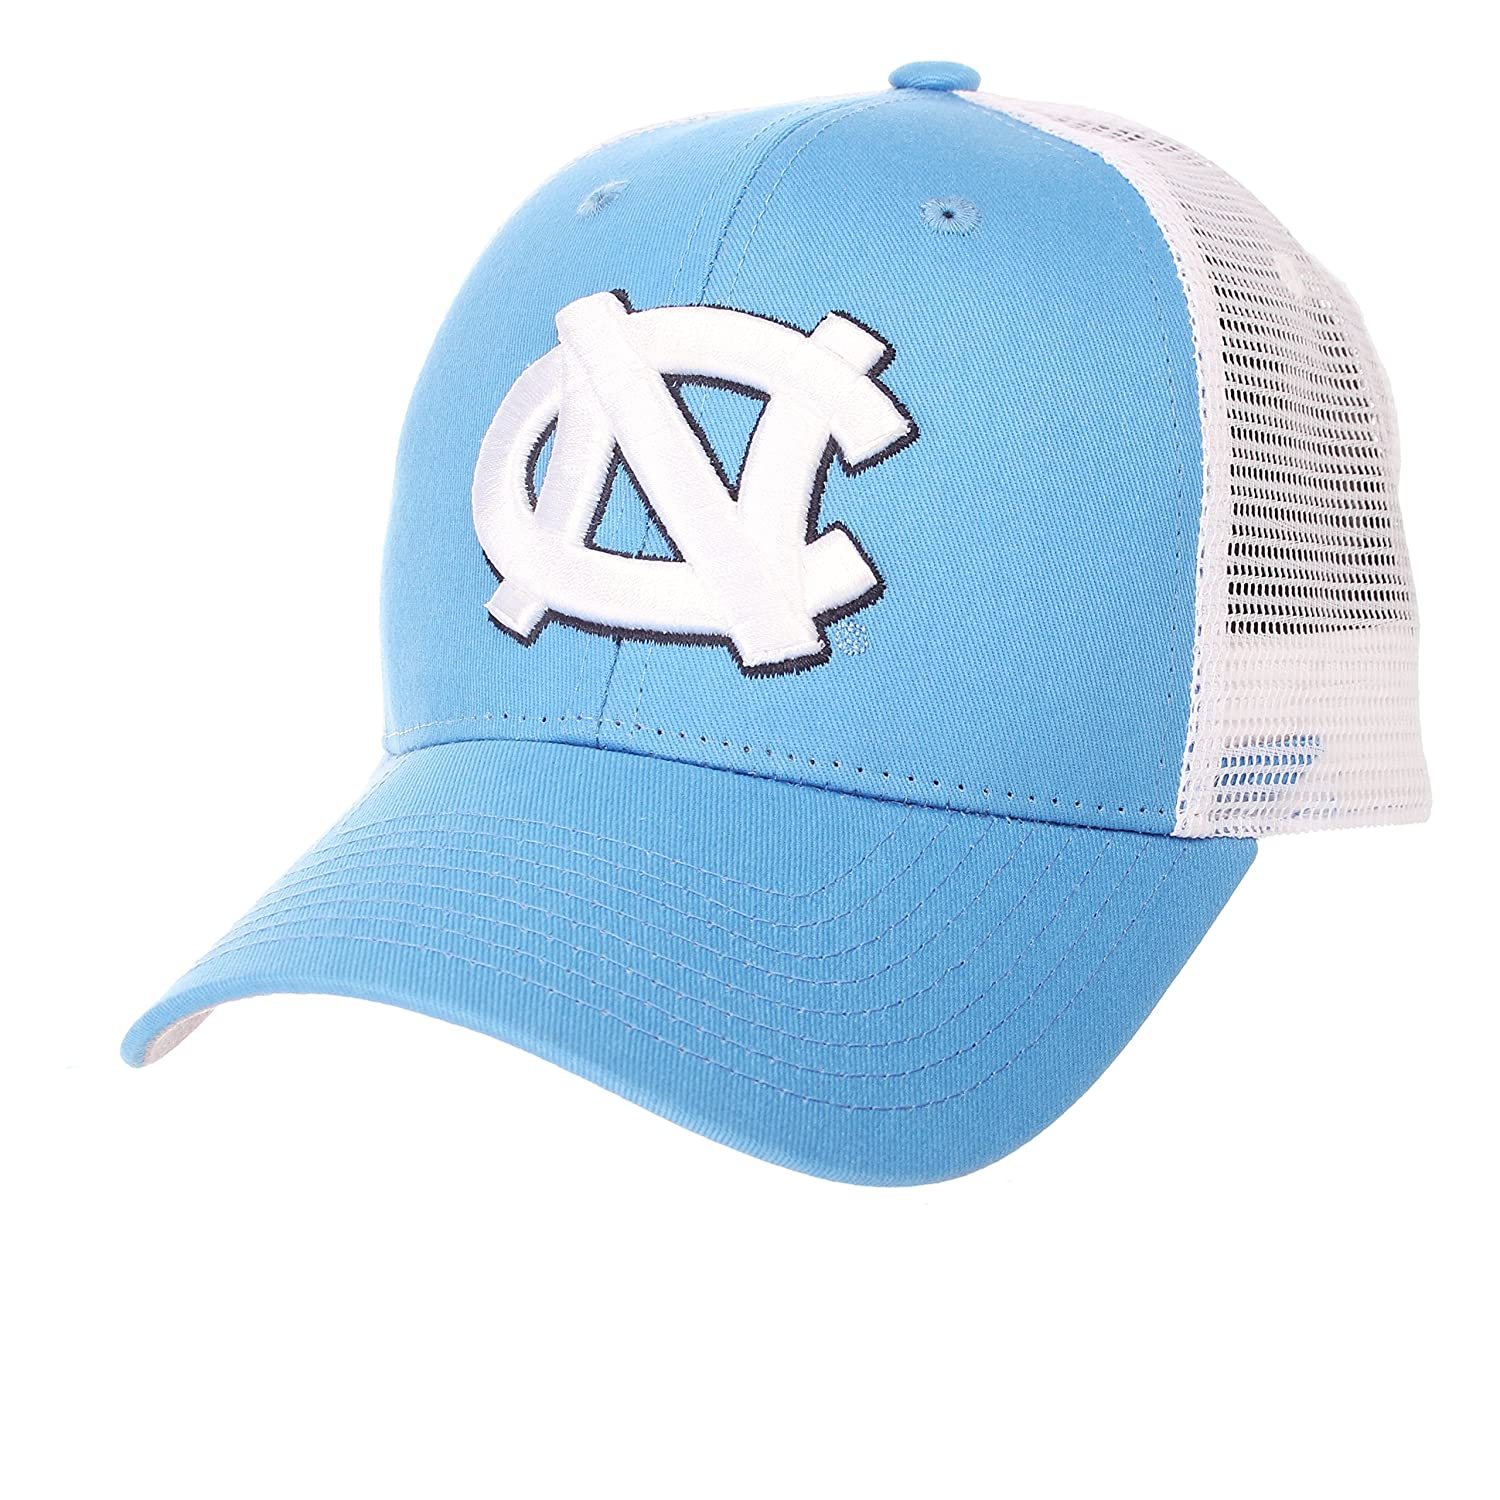 Amazon.com  Zephyr North Carolina Tar Heels Official NCAA Big Rig  Adjustable Hat Cap 423844  Clothing d19b4abcc04a